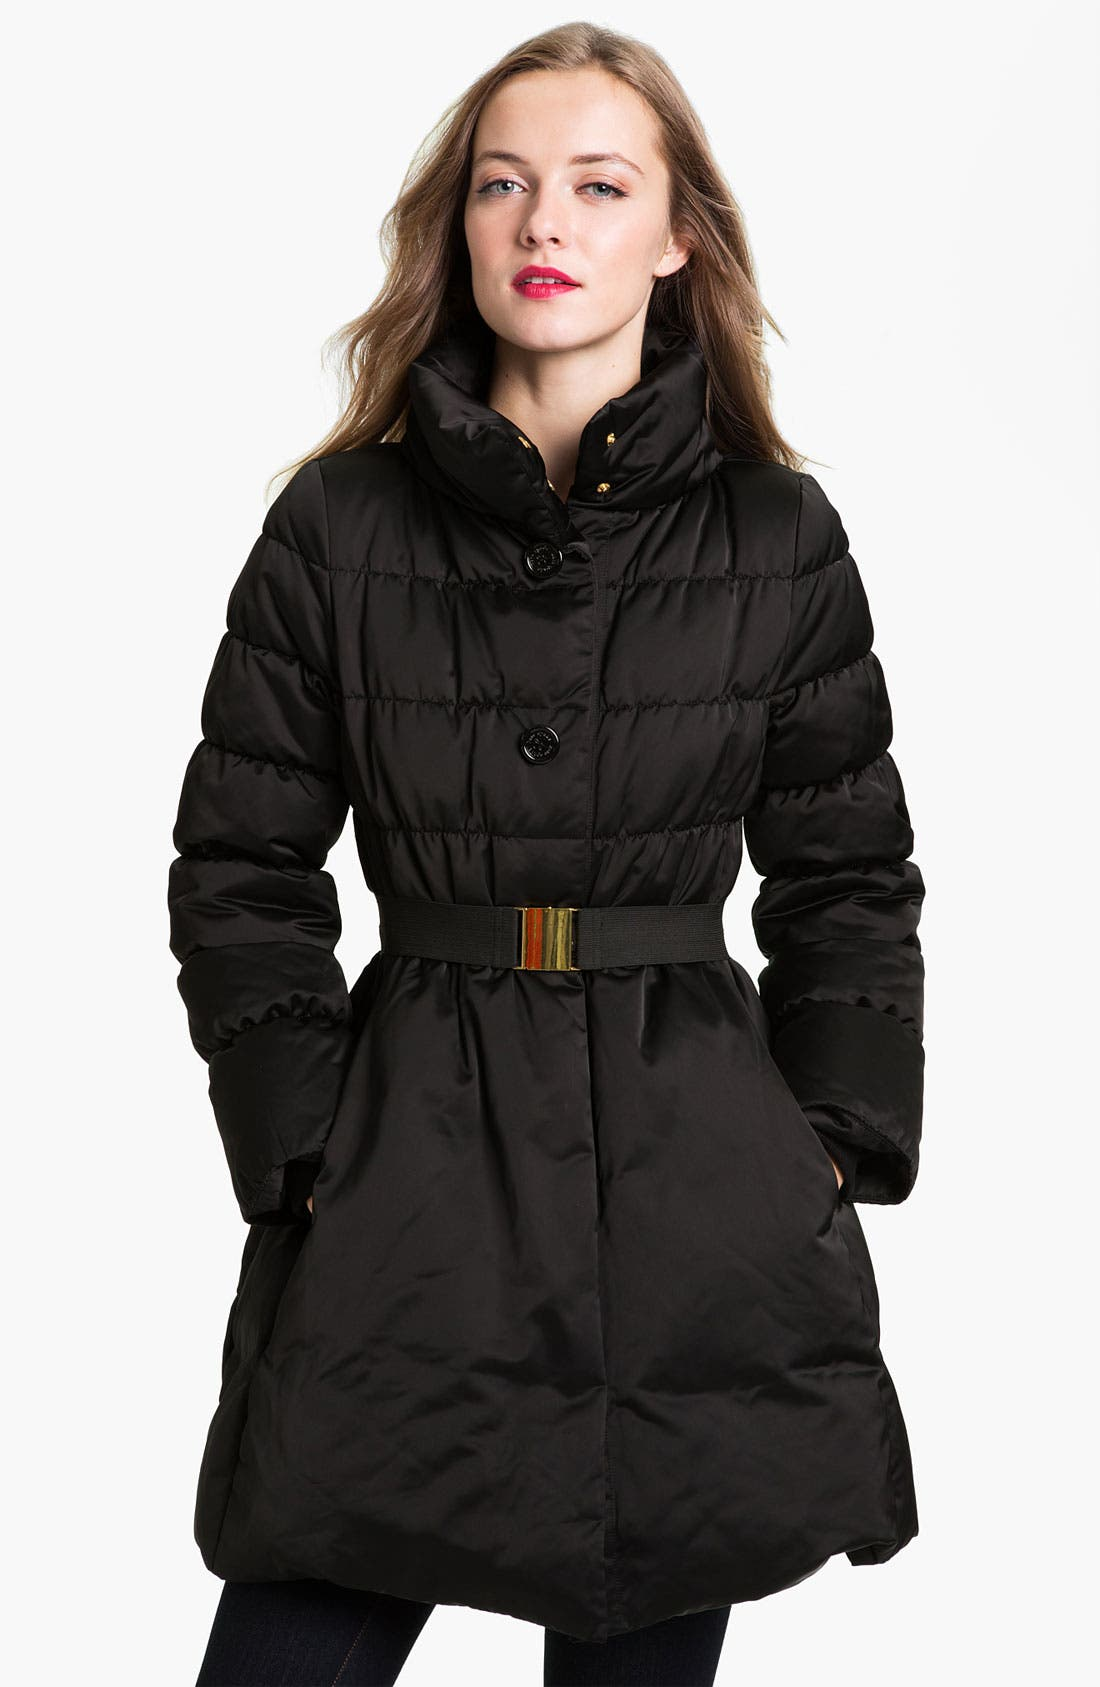 Alternate Image 1 Selected - kate spade new york 'cyndy' coat